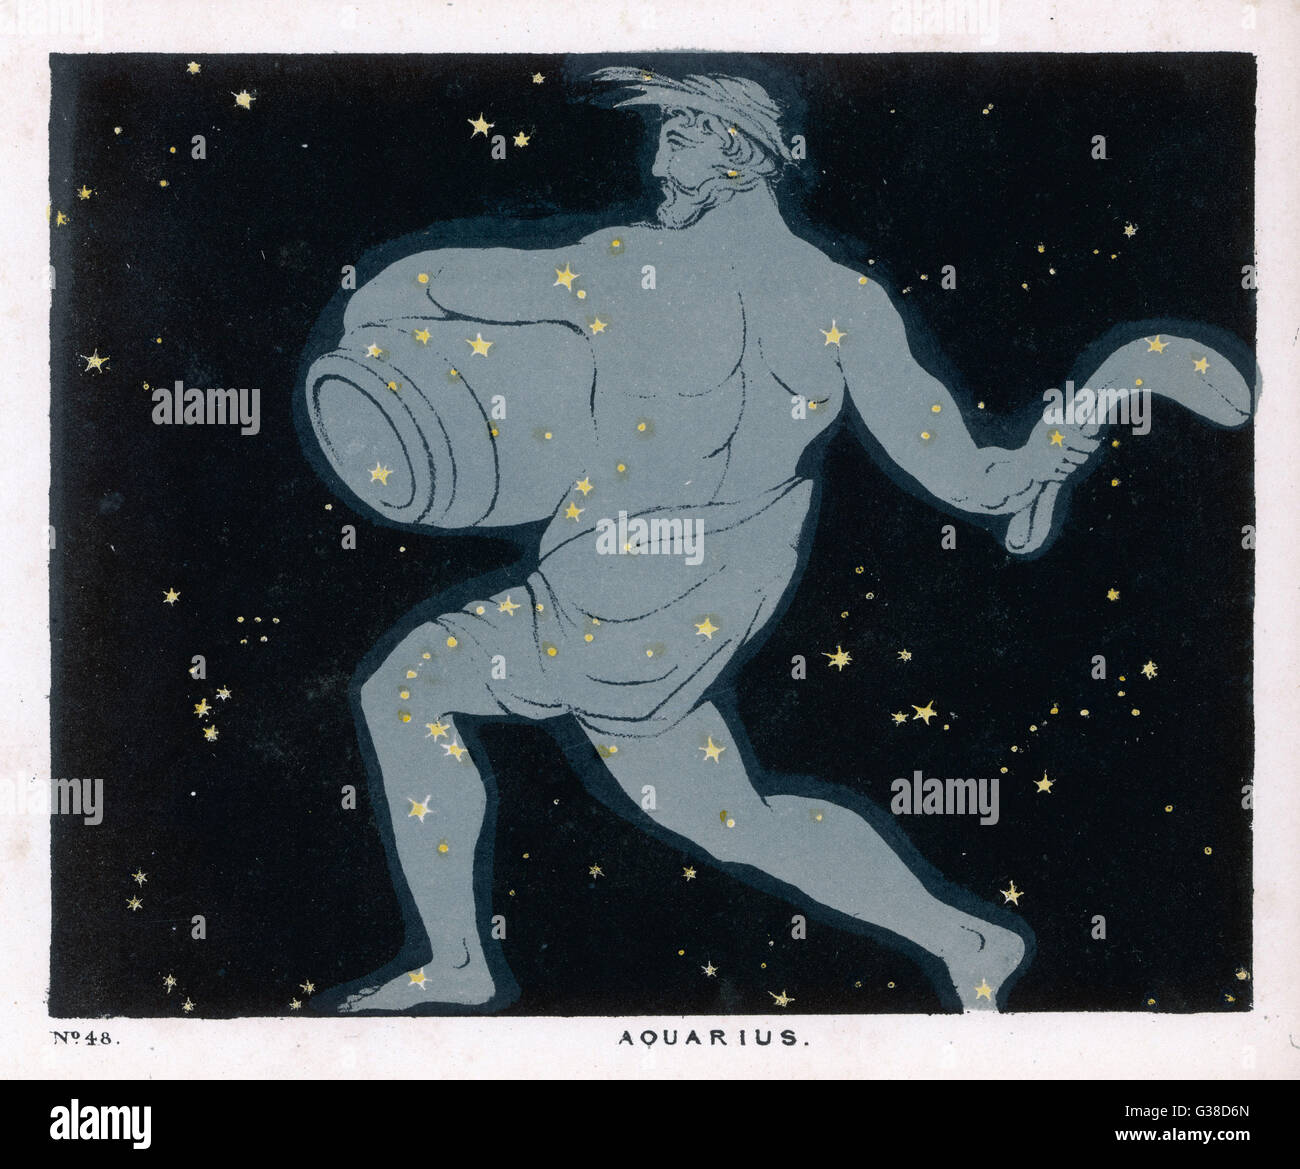 The constellation of  Aquarius, a figure of a man  carrying a jar of water.       Date: 1849 - Stock Image